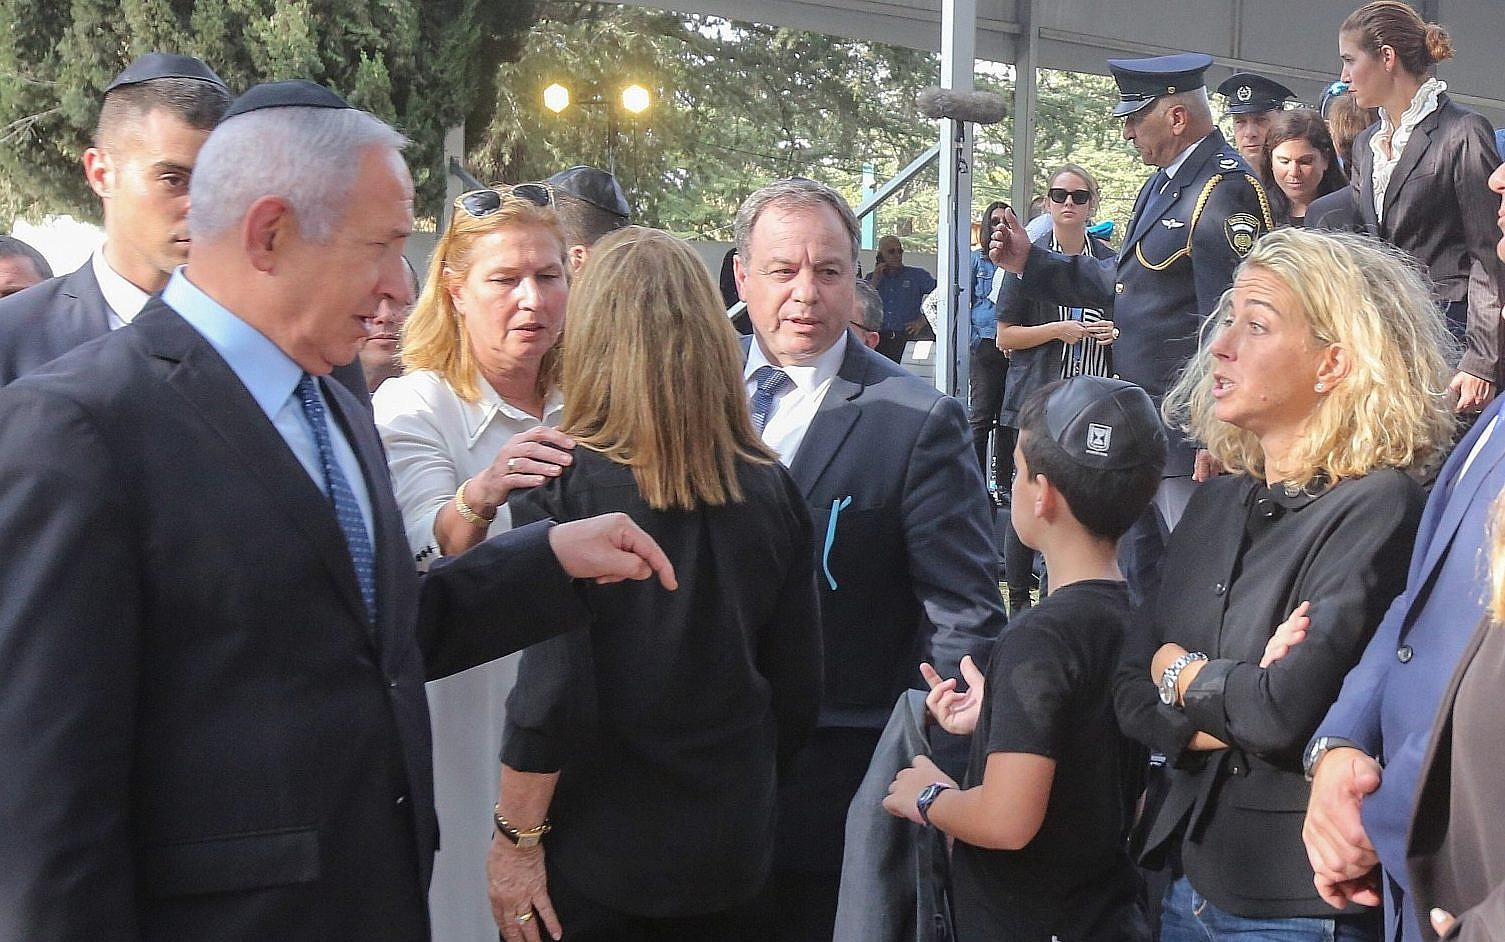 pm rebuts claim by rabin s granddaughter that his aide cast ex pm as